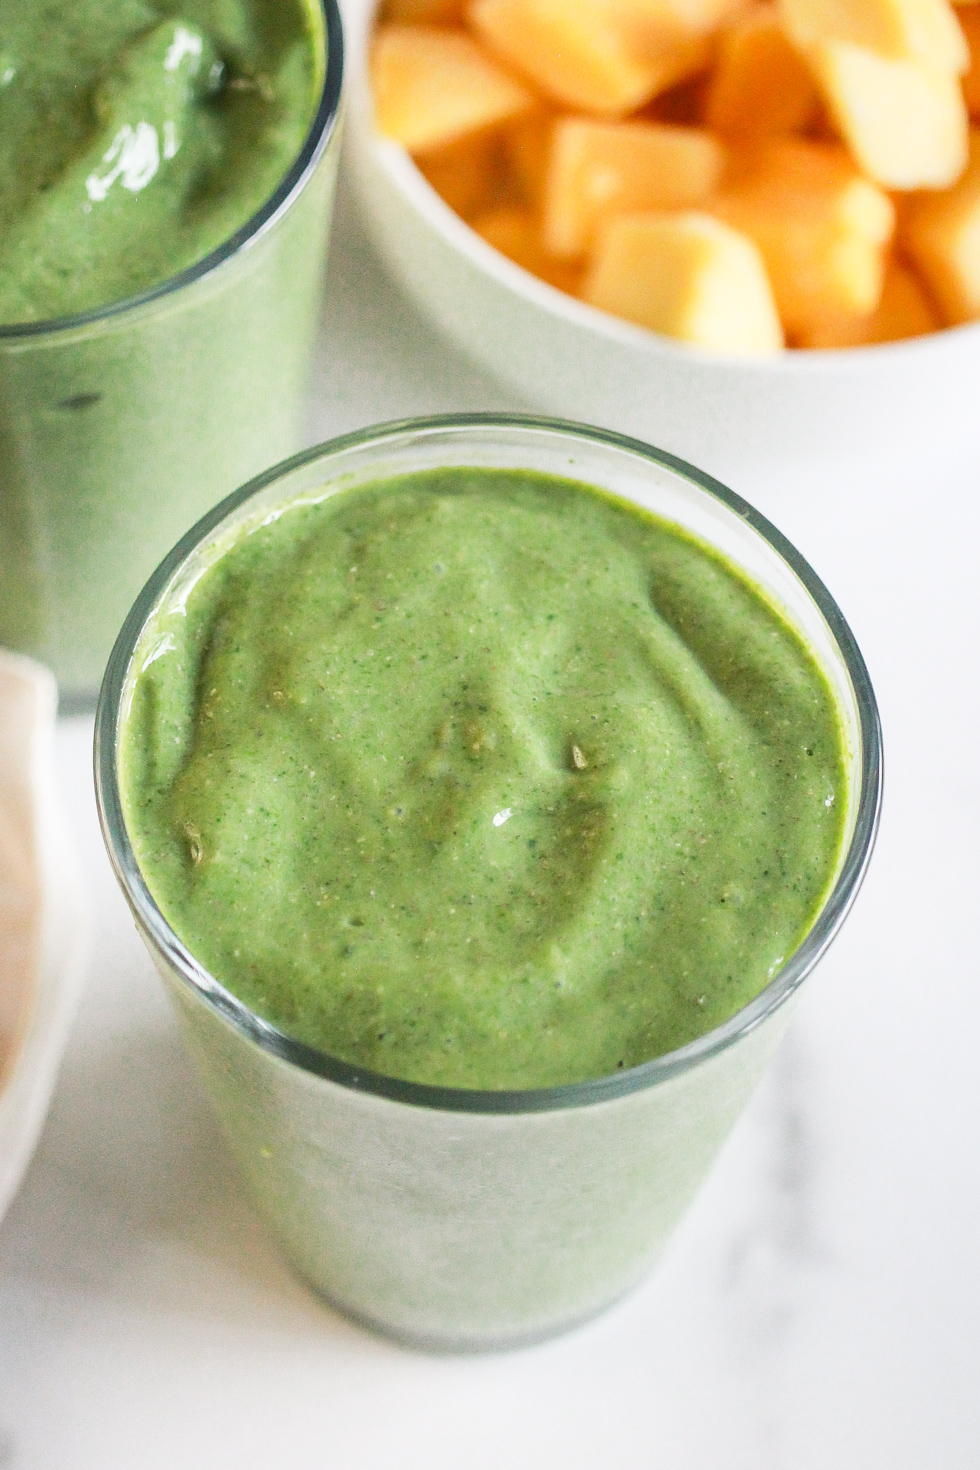 Green smoothies next to a bowl of frozen mangoes